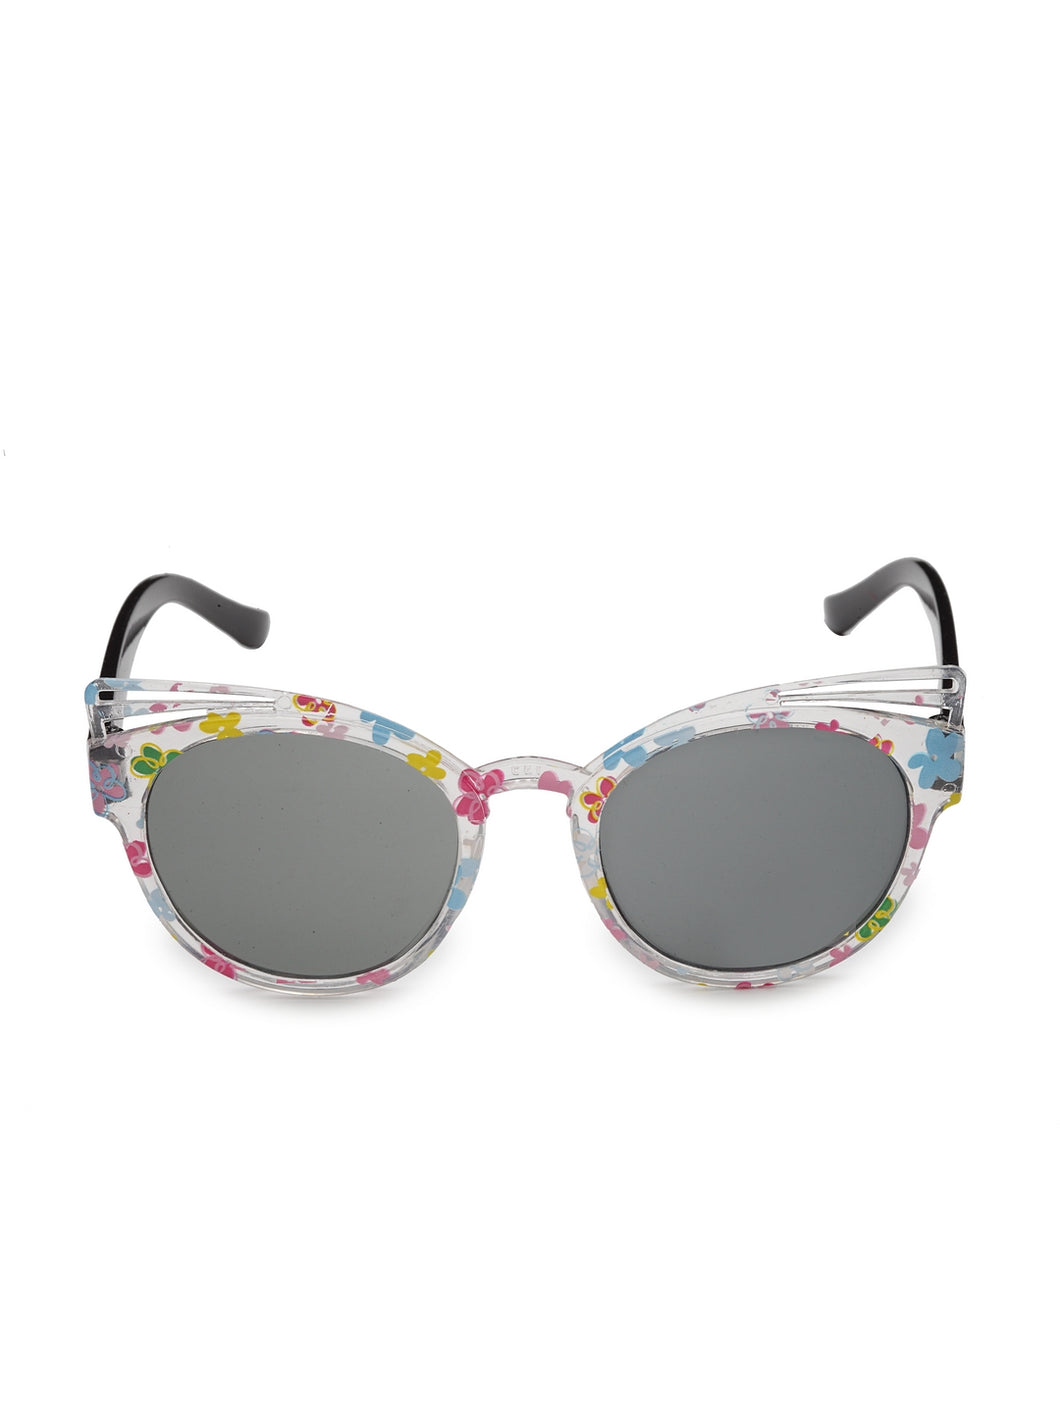 Stol'n Kids Yellow and Blue Bow Applique Rectangular Sunglasses:Yellow and Blue White